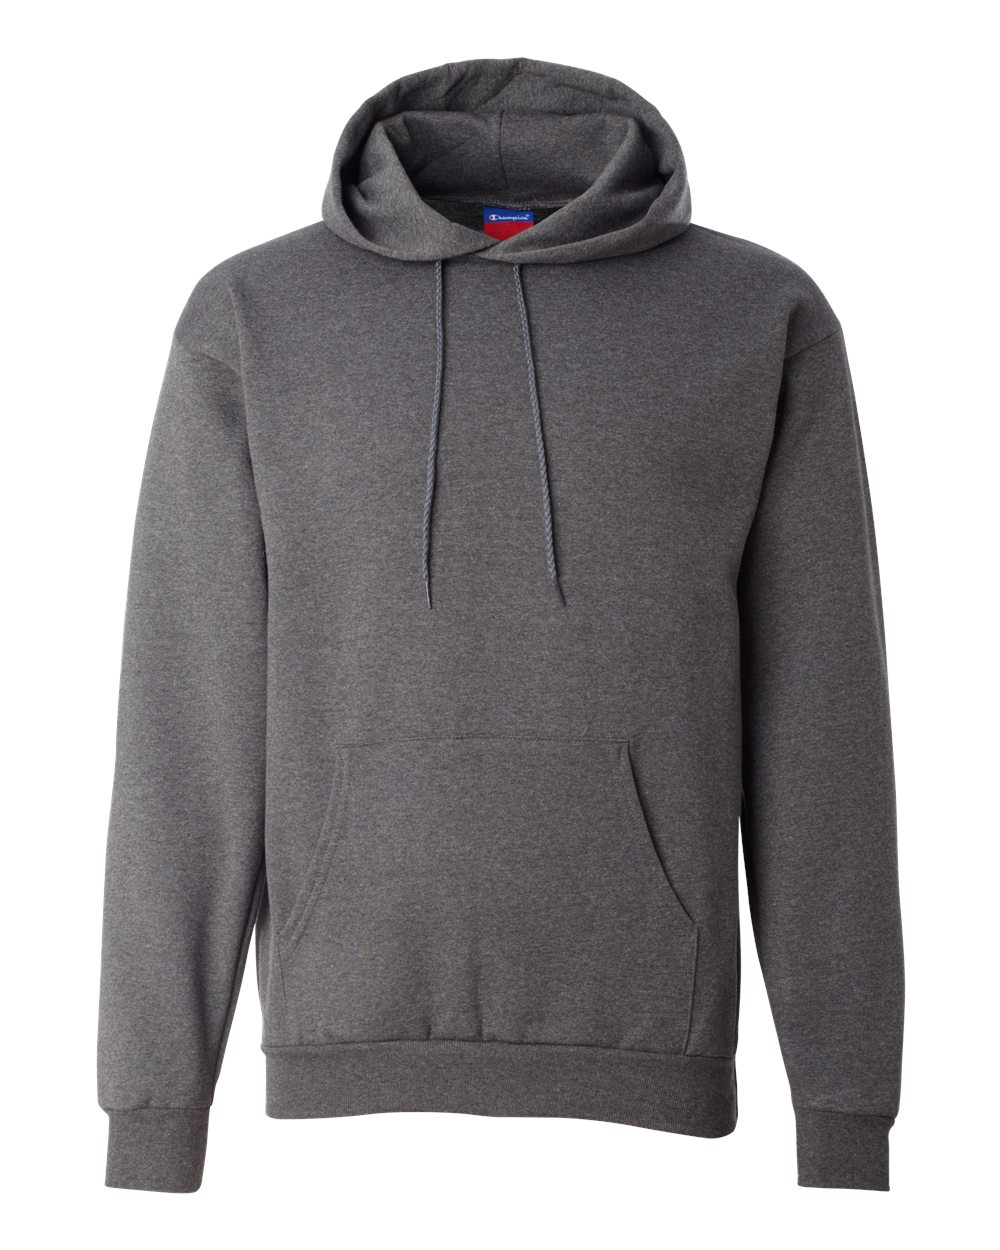 Champion-Mens-Double-Dry-Eco-Hooded-Sweatshirt-Hoodie-Pullover-S700-up-to-3XL miniature 9